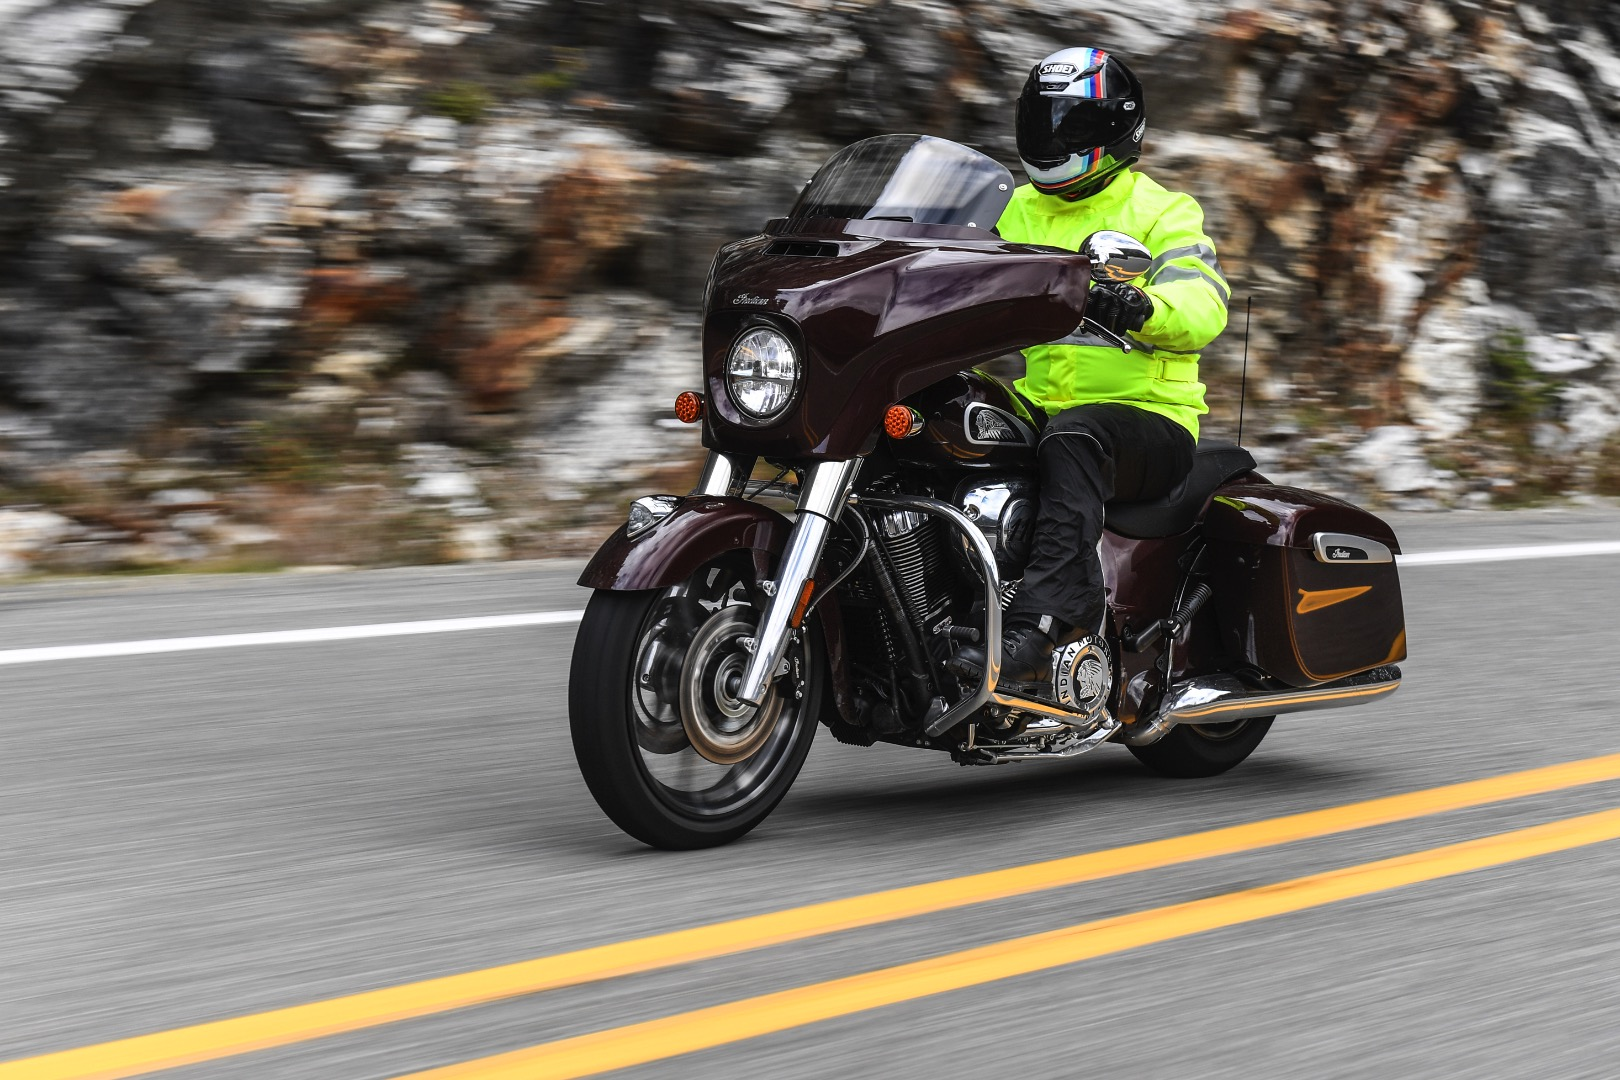 : 2019 Indian Chieftain Limited rain